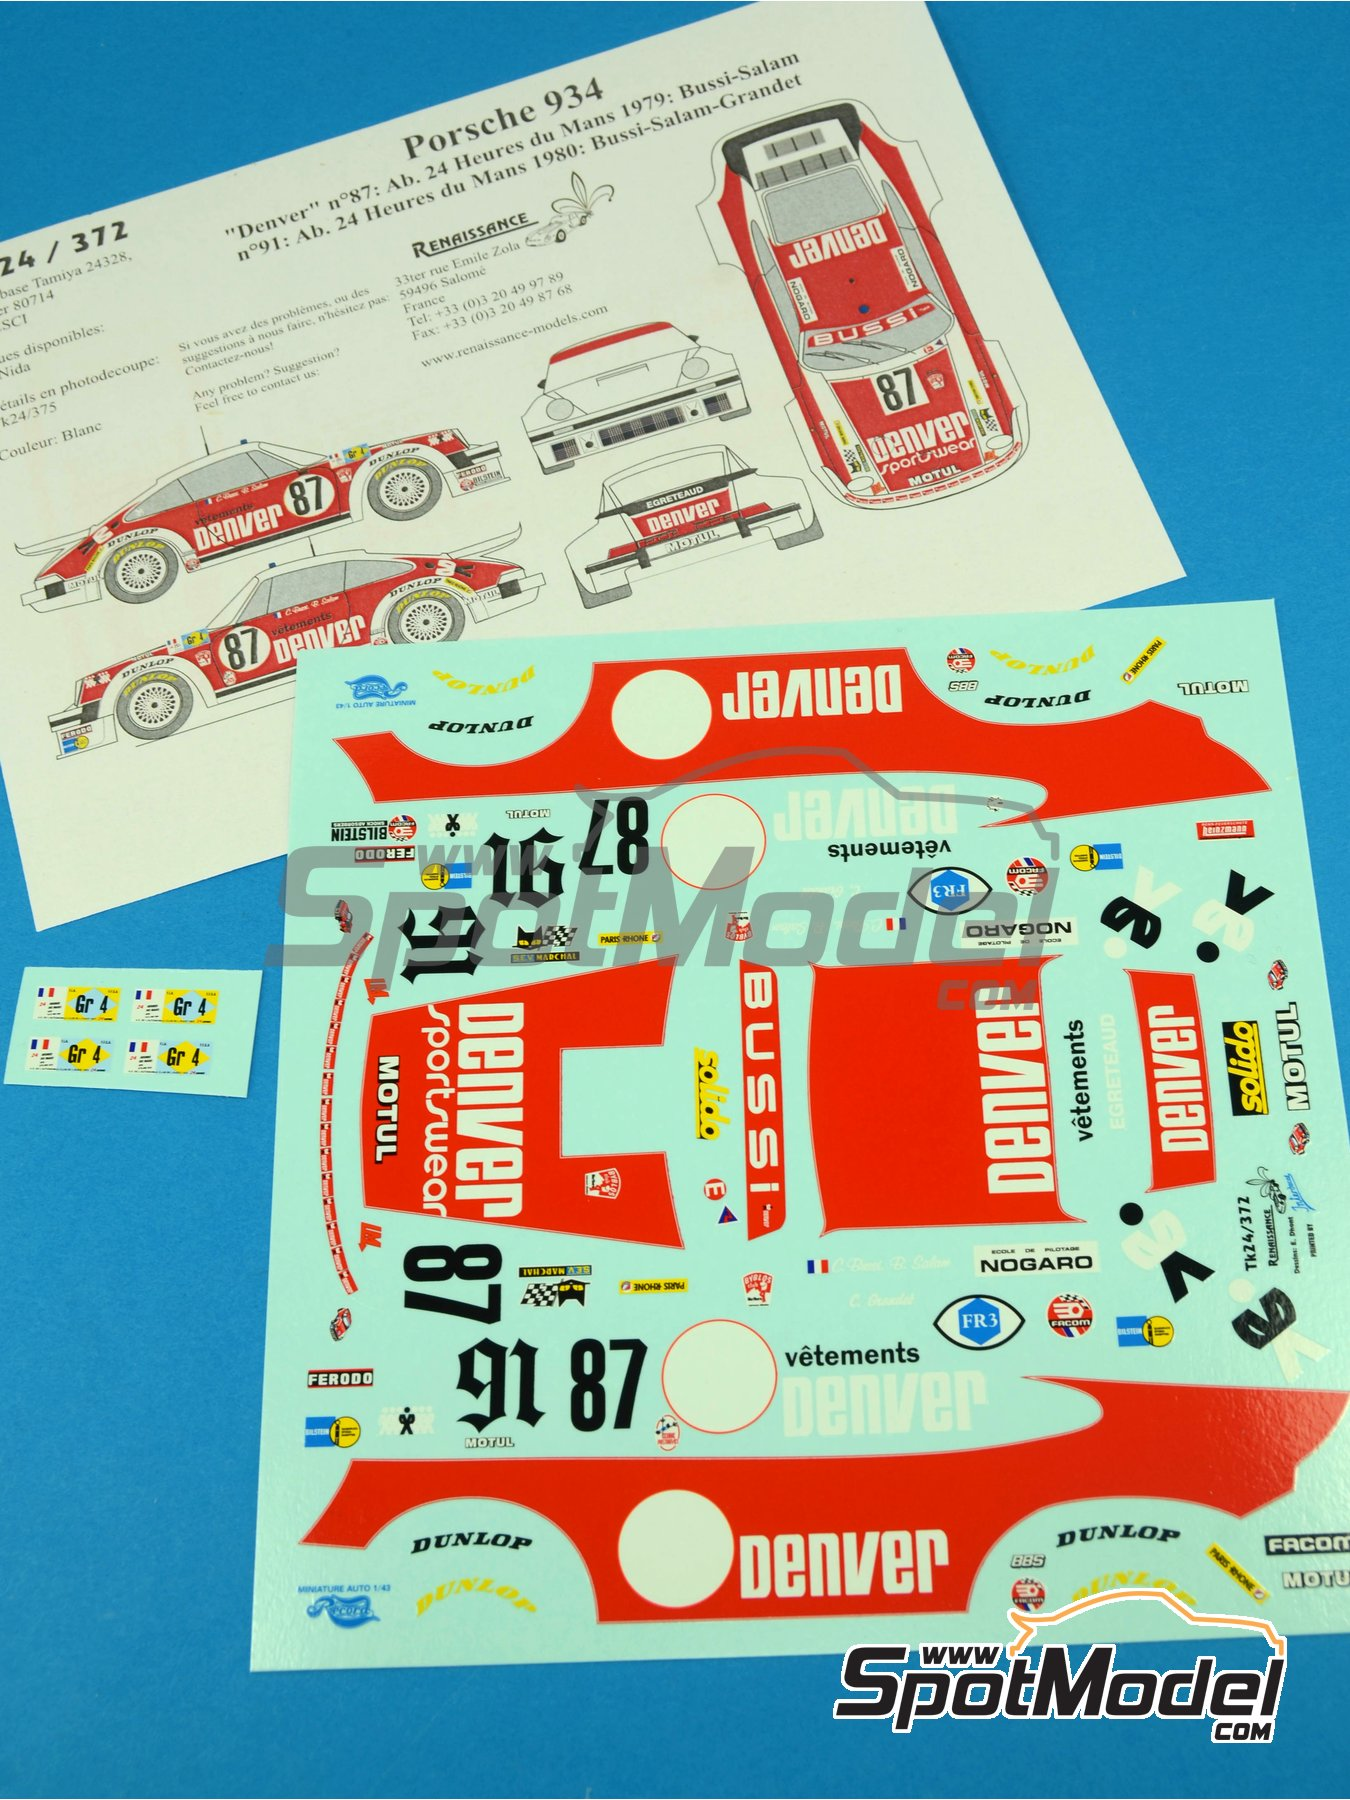 Porsche 934 Turbo RSR Group 4 Denver - 24 Hours Le Mans 1979 and 1980 | Marking / livery in 1/24 scale manufactured by Renaissance Models (ref.TK24-372) image